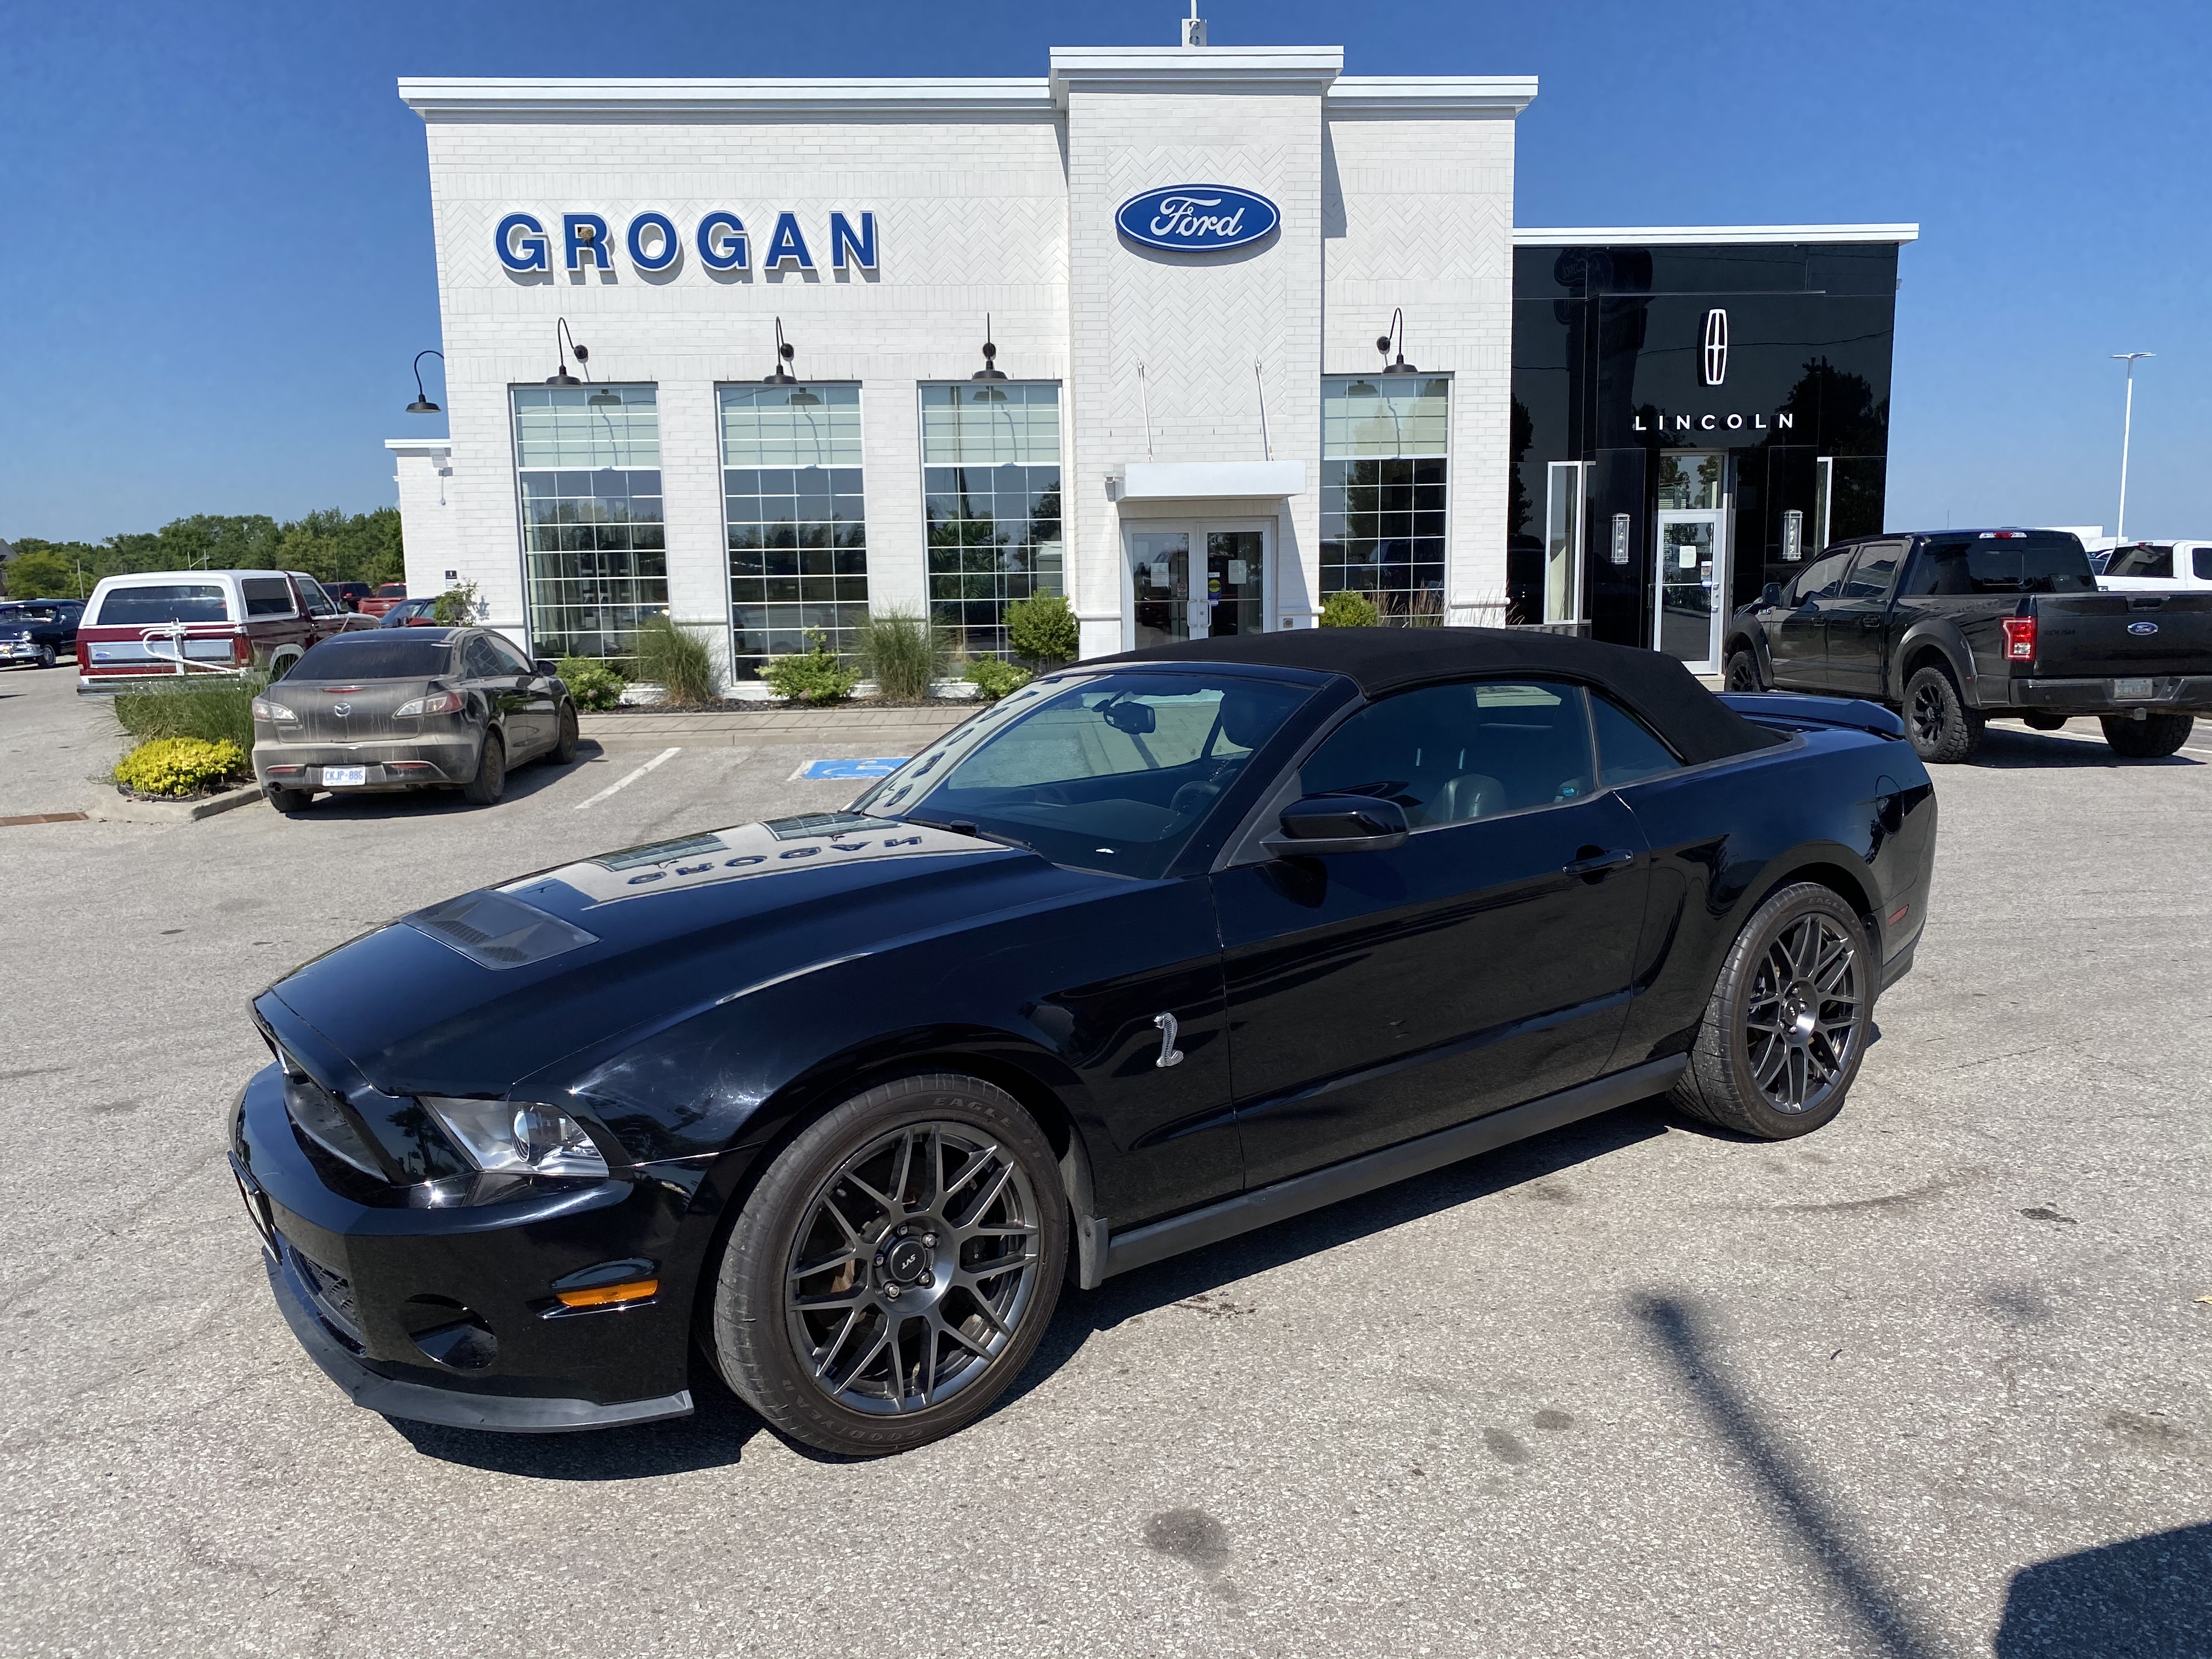 2011 Ford Mustang Shelby Gt500 Black 5 4l V8 32v Mpfi Dohc Supercharged Grogan Ford Lincoln